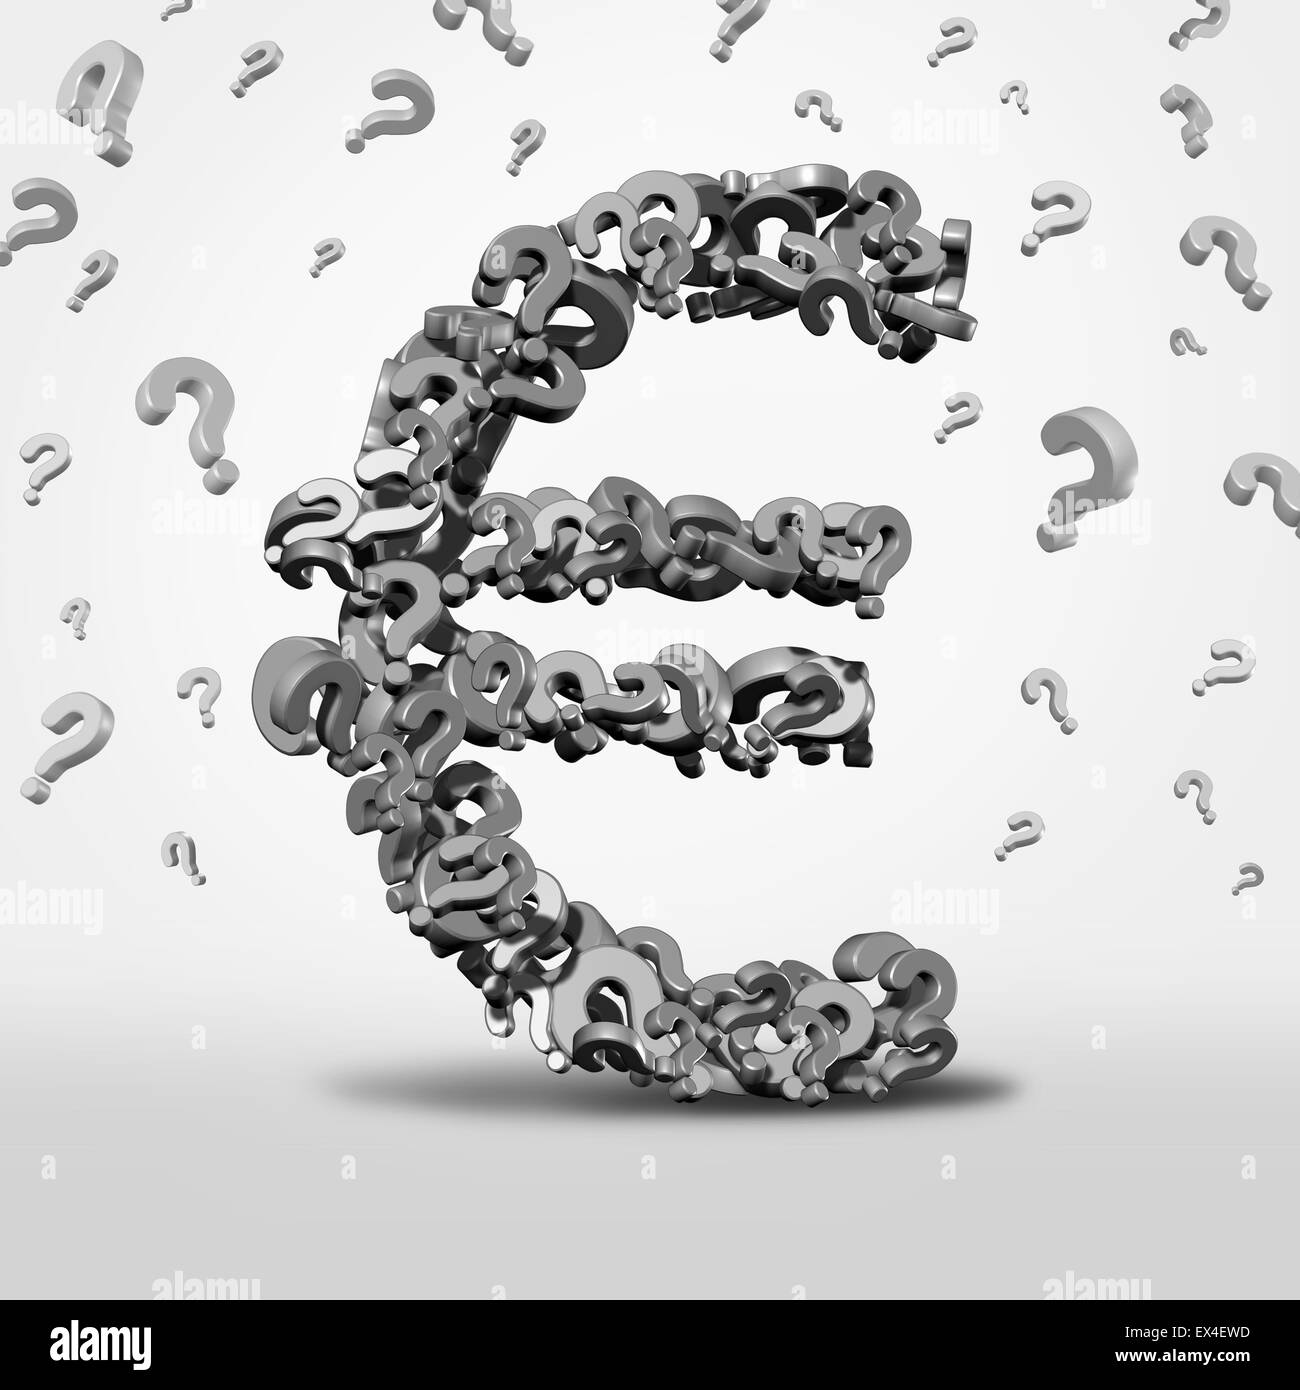 Euro questions and confusion concept as a currency symbol and stock euro questions and confusion concept as a currency symbol and financial guidance icon as a european money icon made of a group of question marks forecasting buycottarizona Choice Image